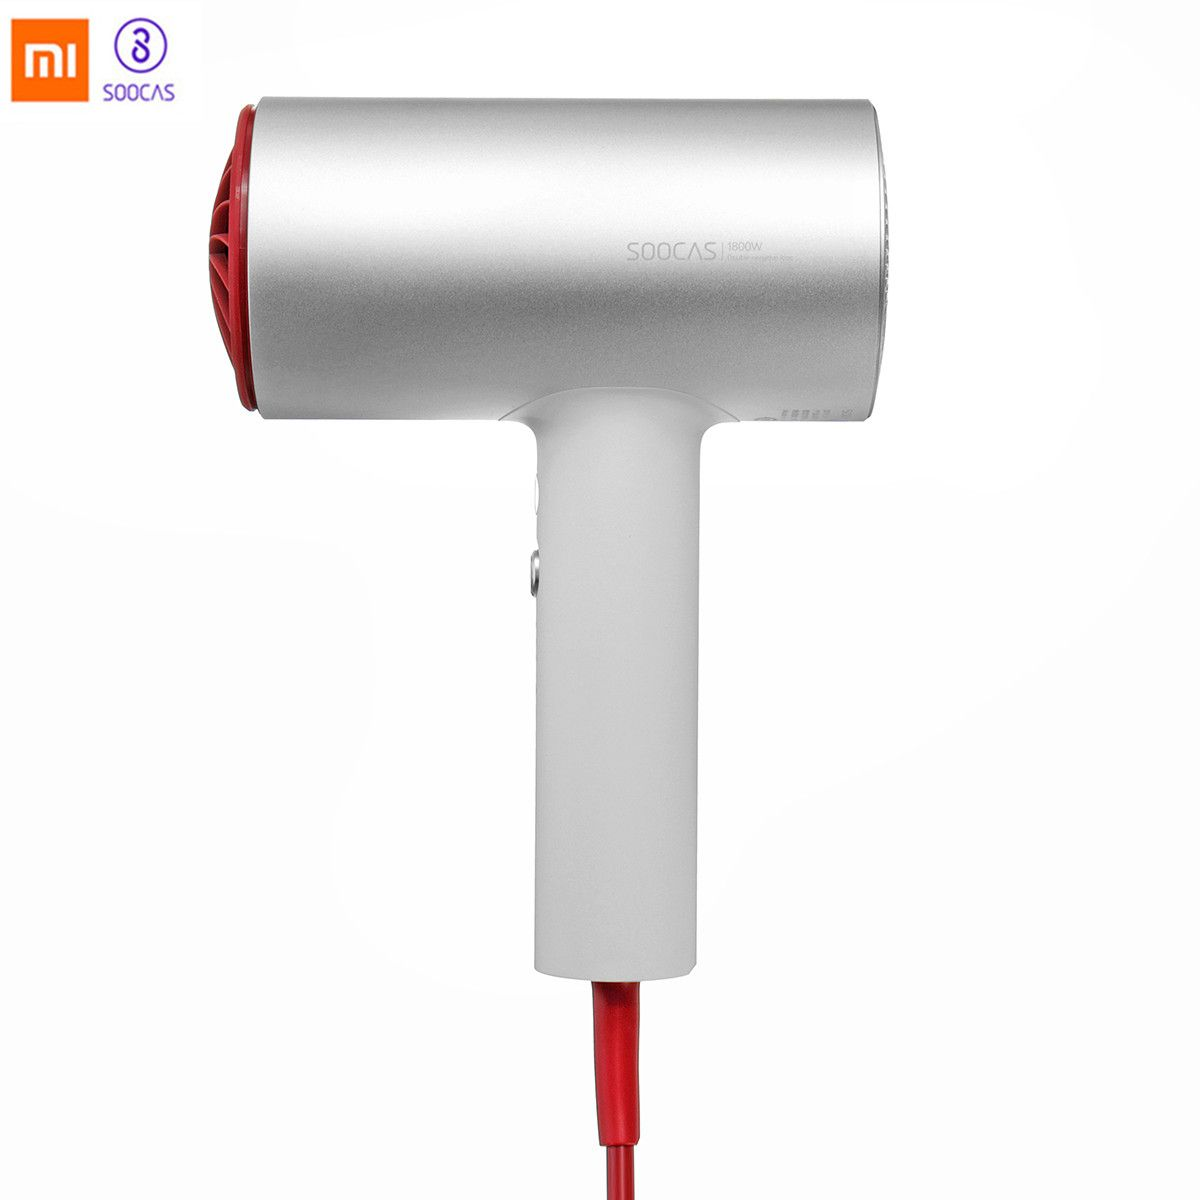 (International Version) Xiaomi Soocas H3 Original Anion Hair Dryer Quick-dry Hair Tools 1800W Air Outlet Anti-Hot Innovative EU